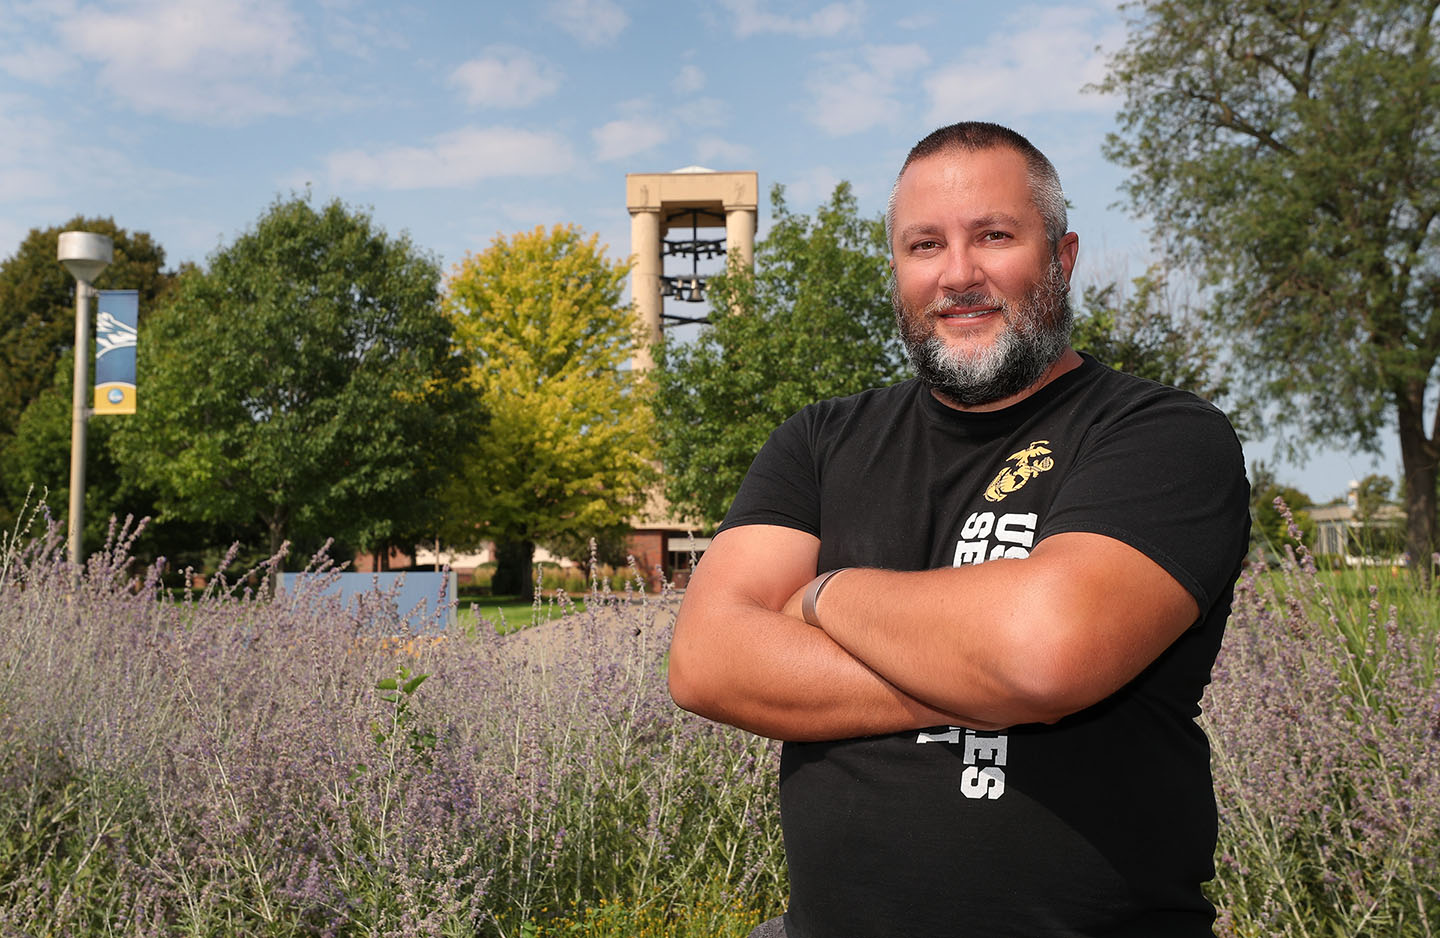 Lance Blythe is president of the Student Veterans Organization at UNK, where he studies geography-GIS with a biology minor. The 39-year-old enlisted in the U.S. Marine Corps following 9/11 and served a total of 11 years in the Marines and Nebraska Army National Guard.